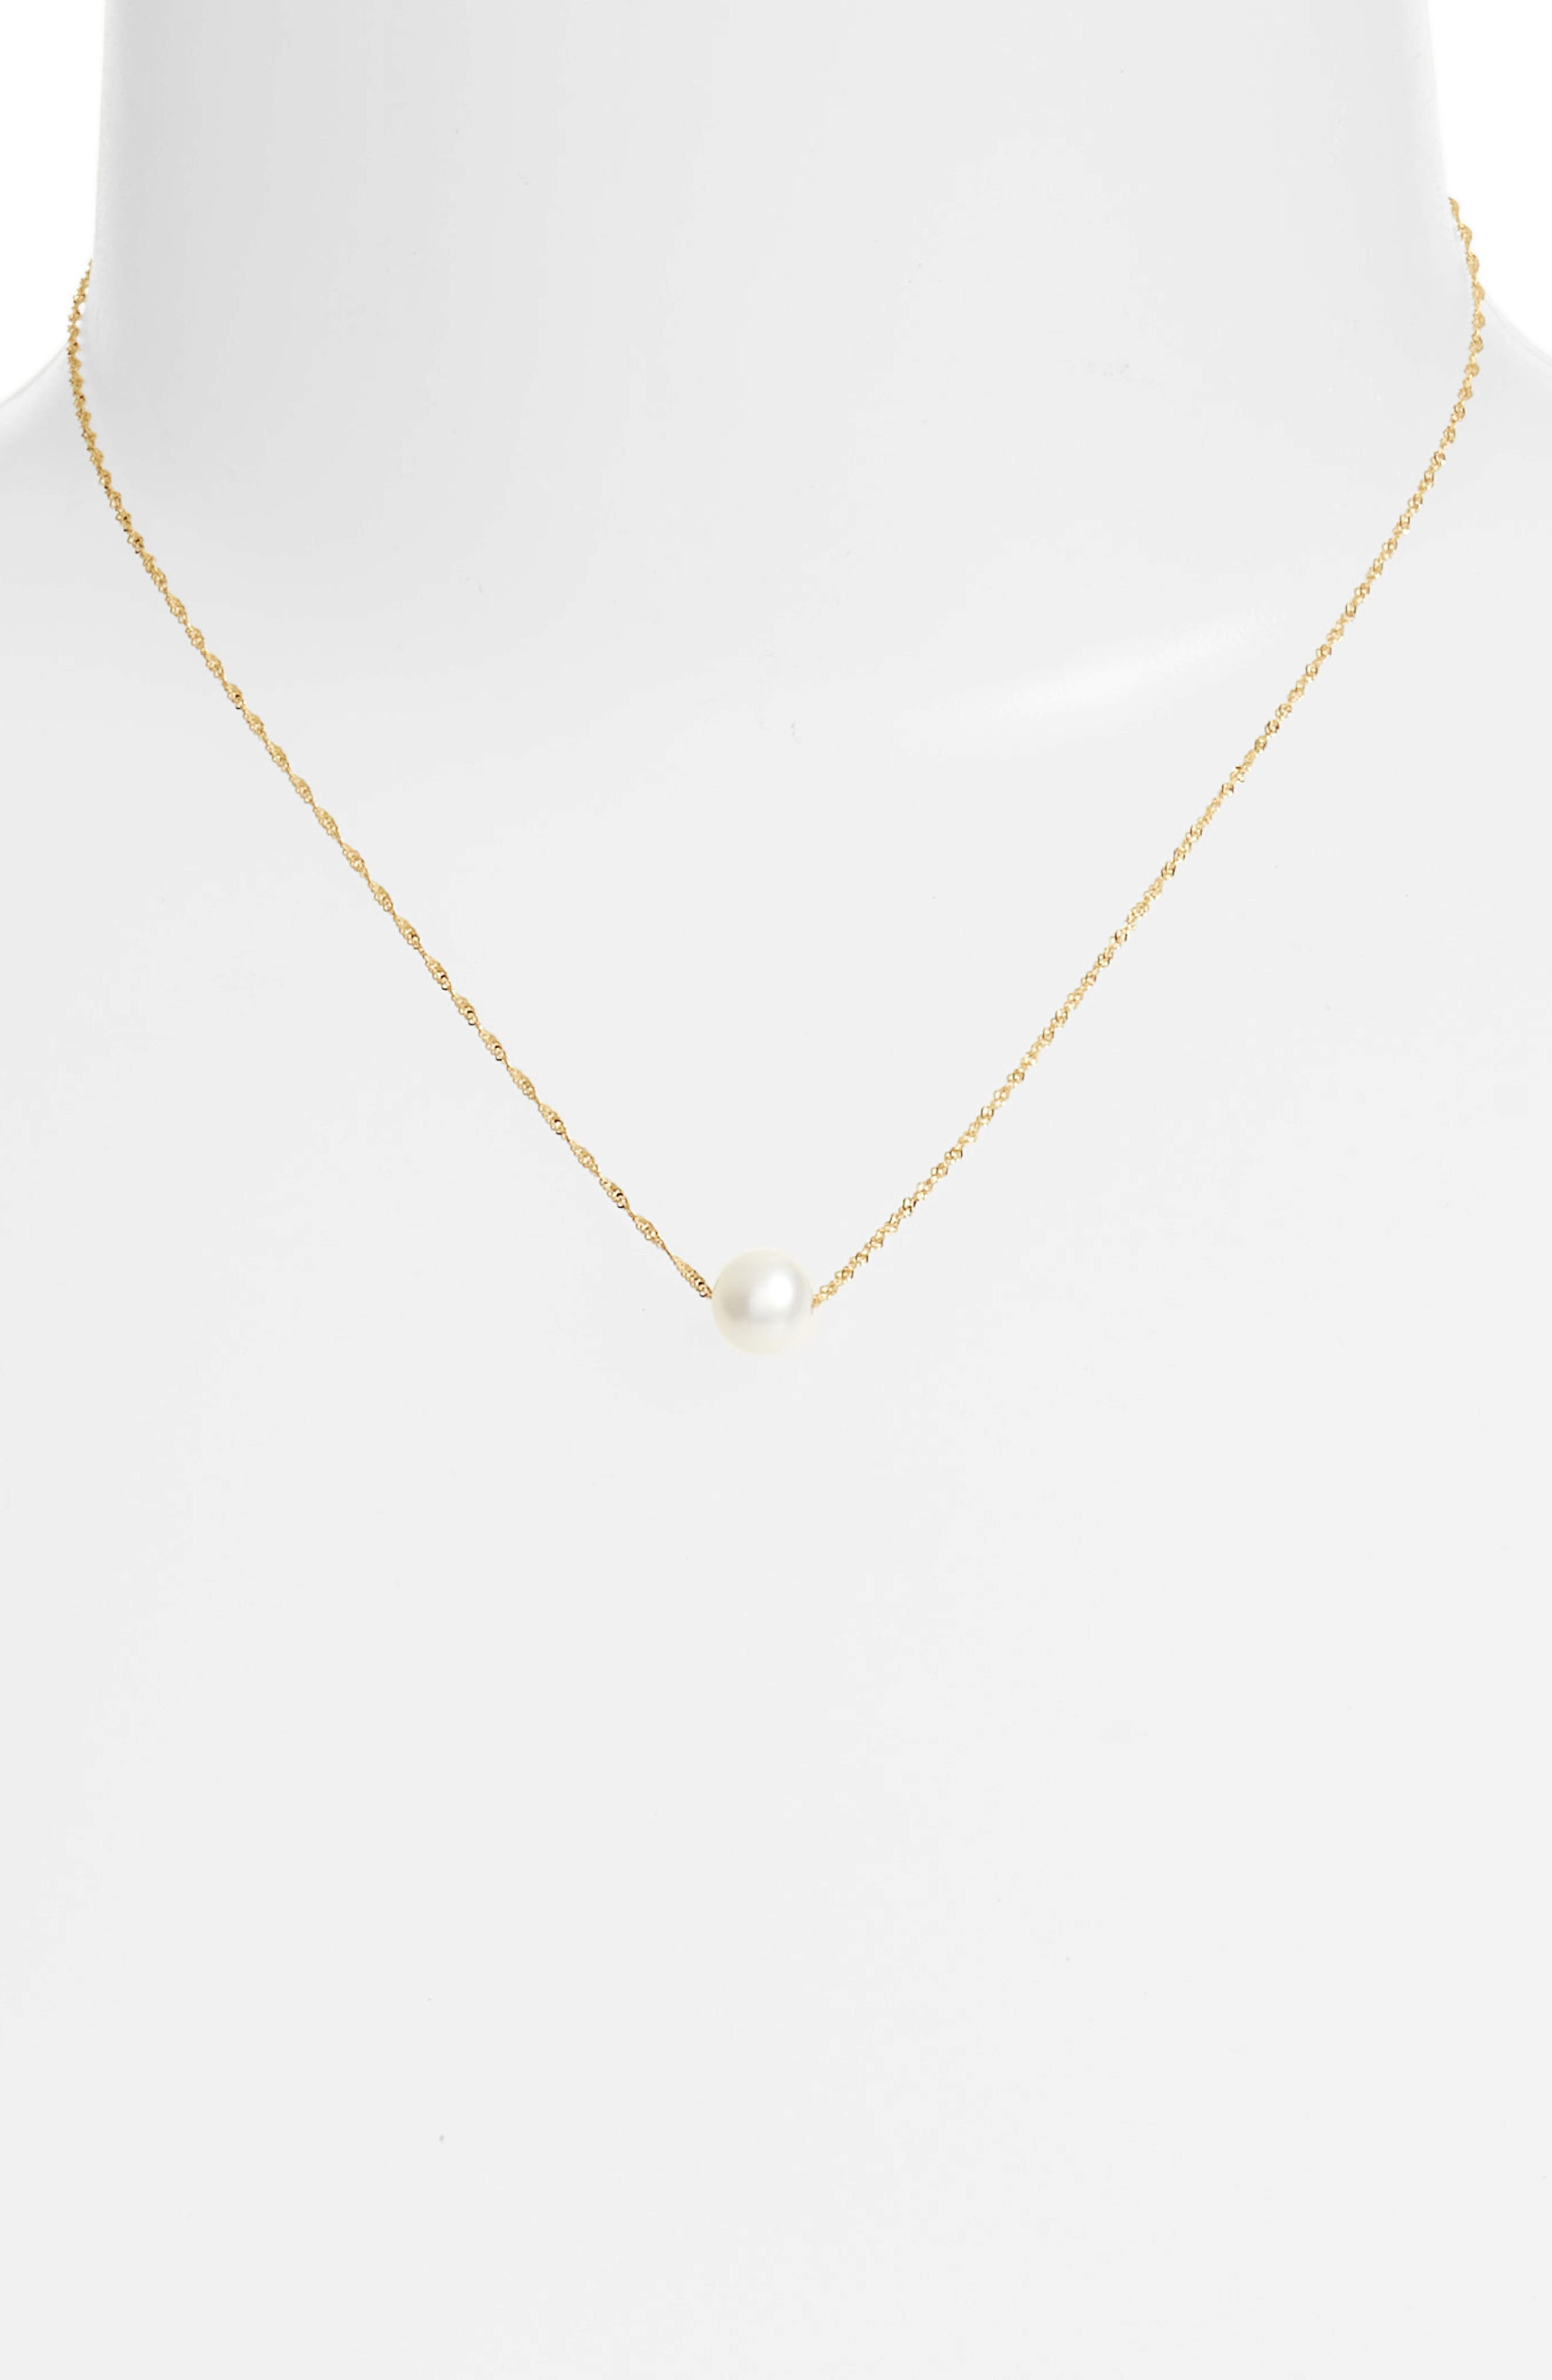 Petite Pearl Necklace,                             Alternate thumbnail 2, color,                             YELLOW GOLD/ PEARL